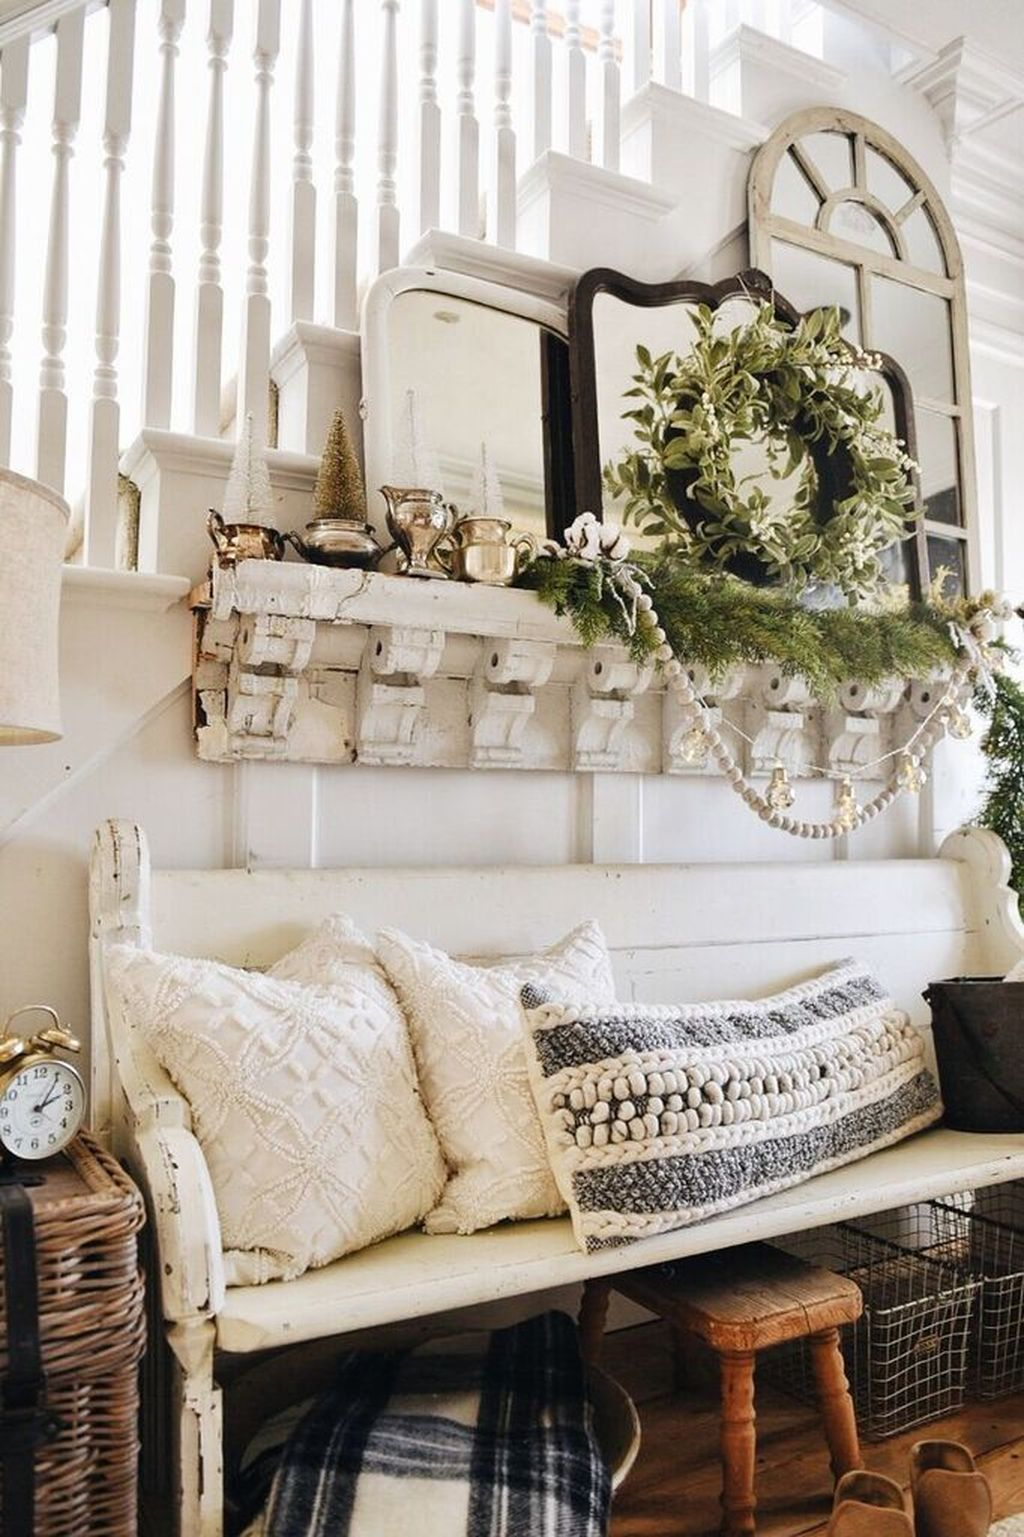 Stupendous 39 Welcoming And Cozy Christmas Entryway Decoration Ideas Pdpeps Interior Chair Design Pdpepsorg